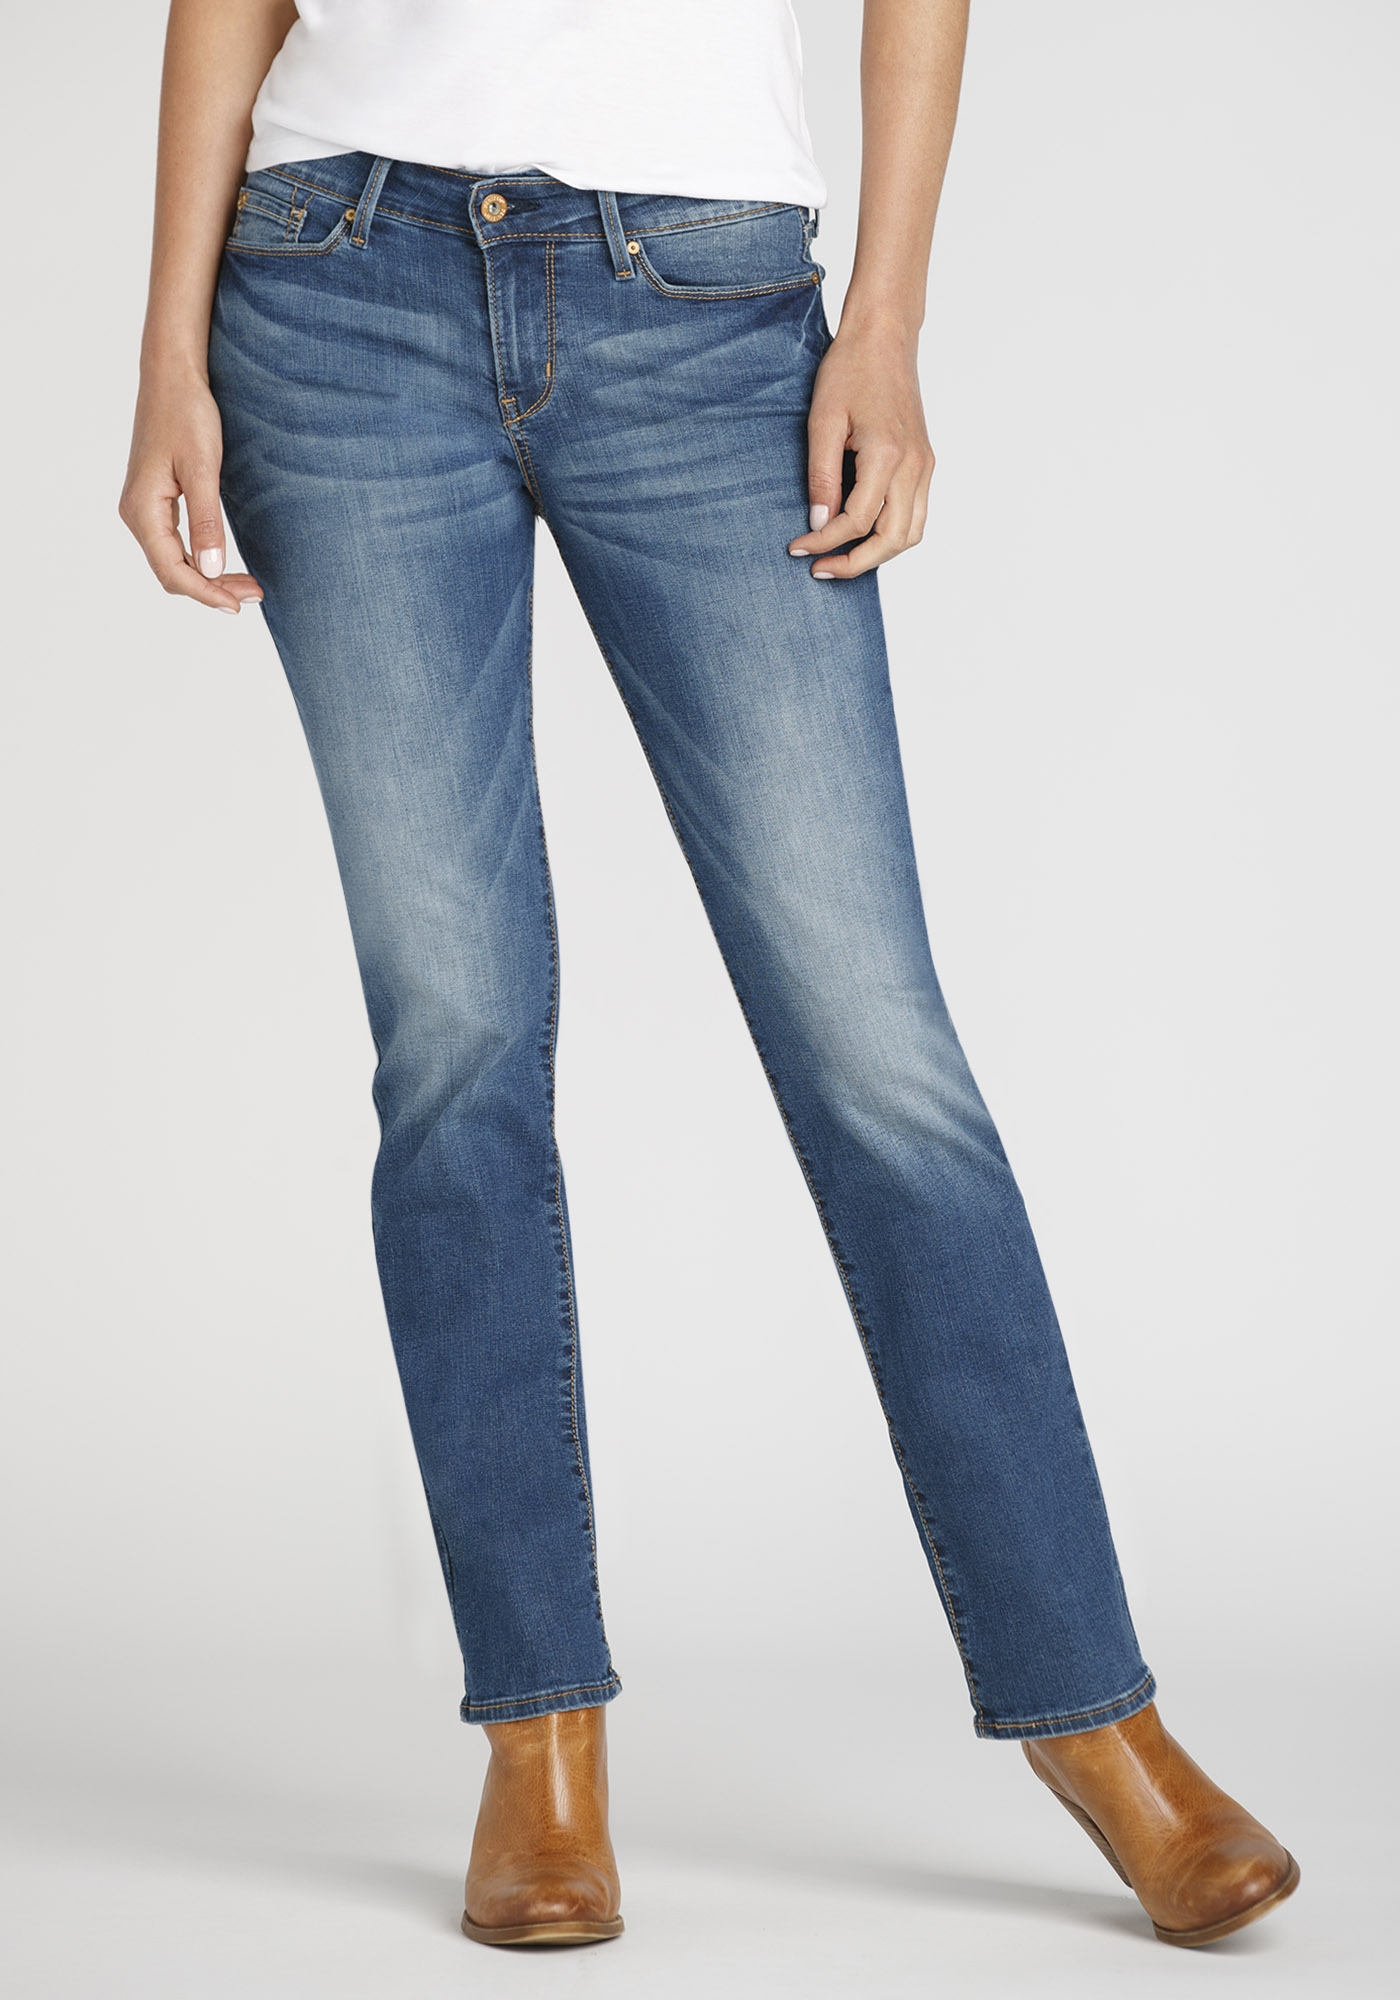 Mens Relaxed Straight Jeans